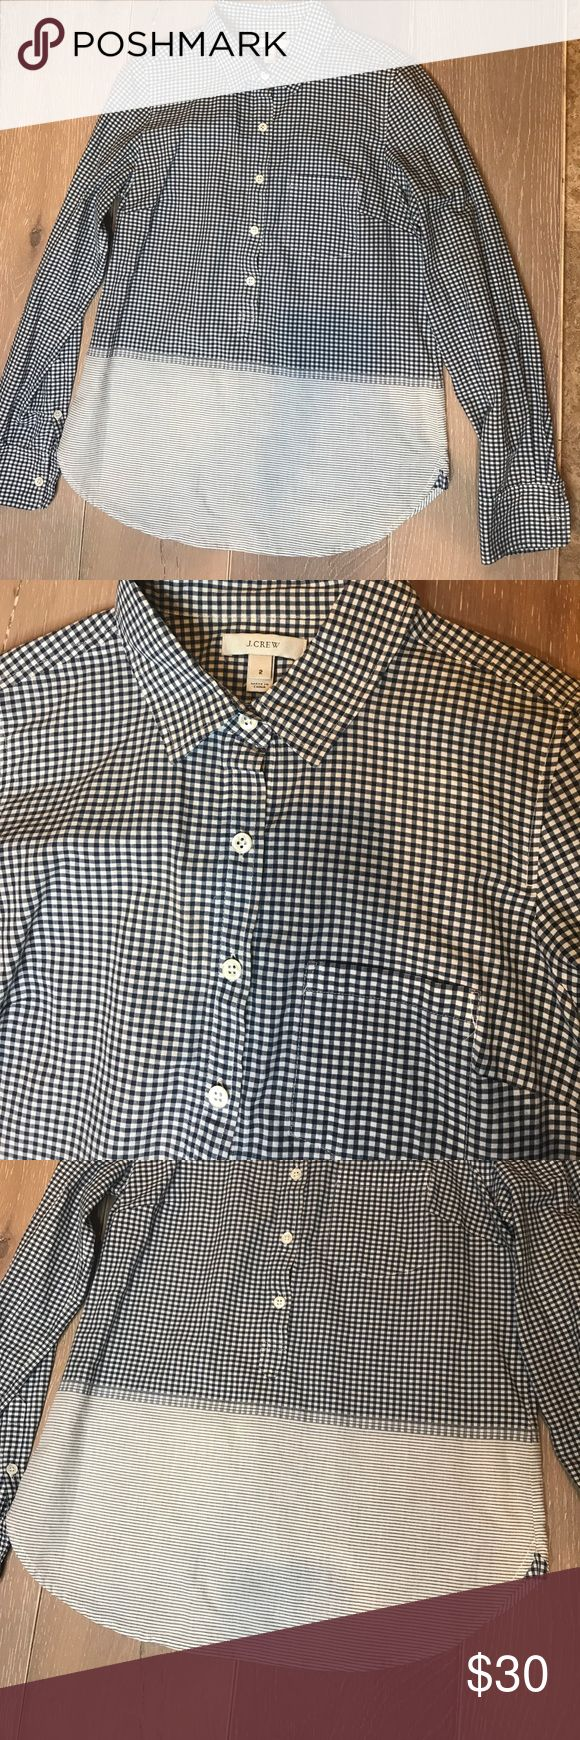 Popover button up shirt. Small Gingham print with stripes bottom half  Shirt pocket J. Crew Tops Button Down Shirts